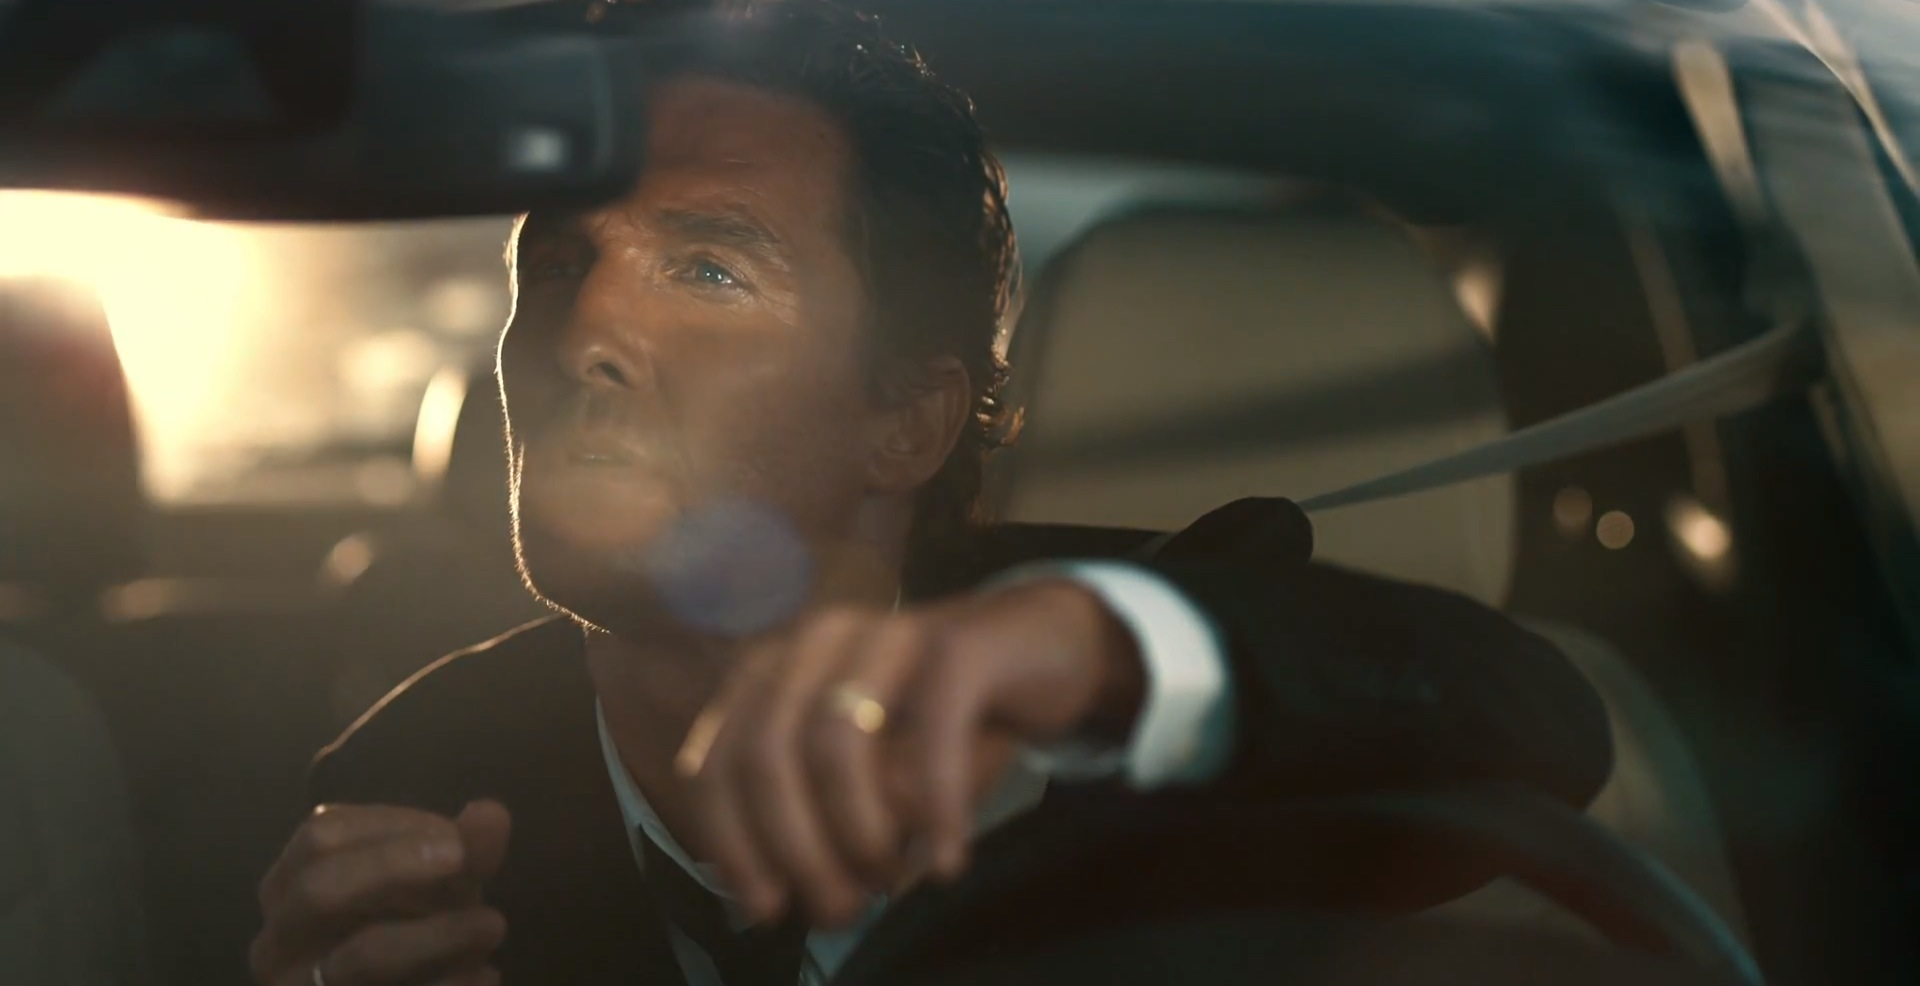 mcconaughey has interstellar like moment in new lincoln ad